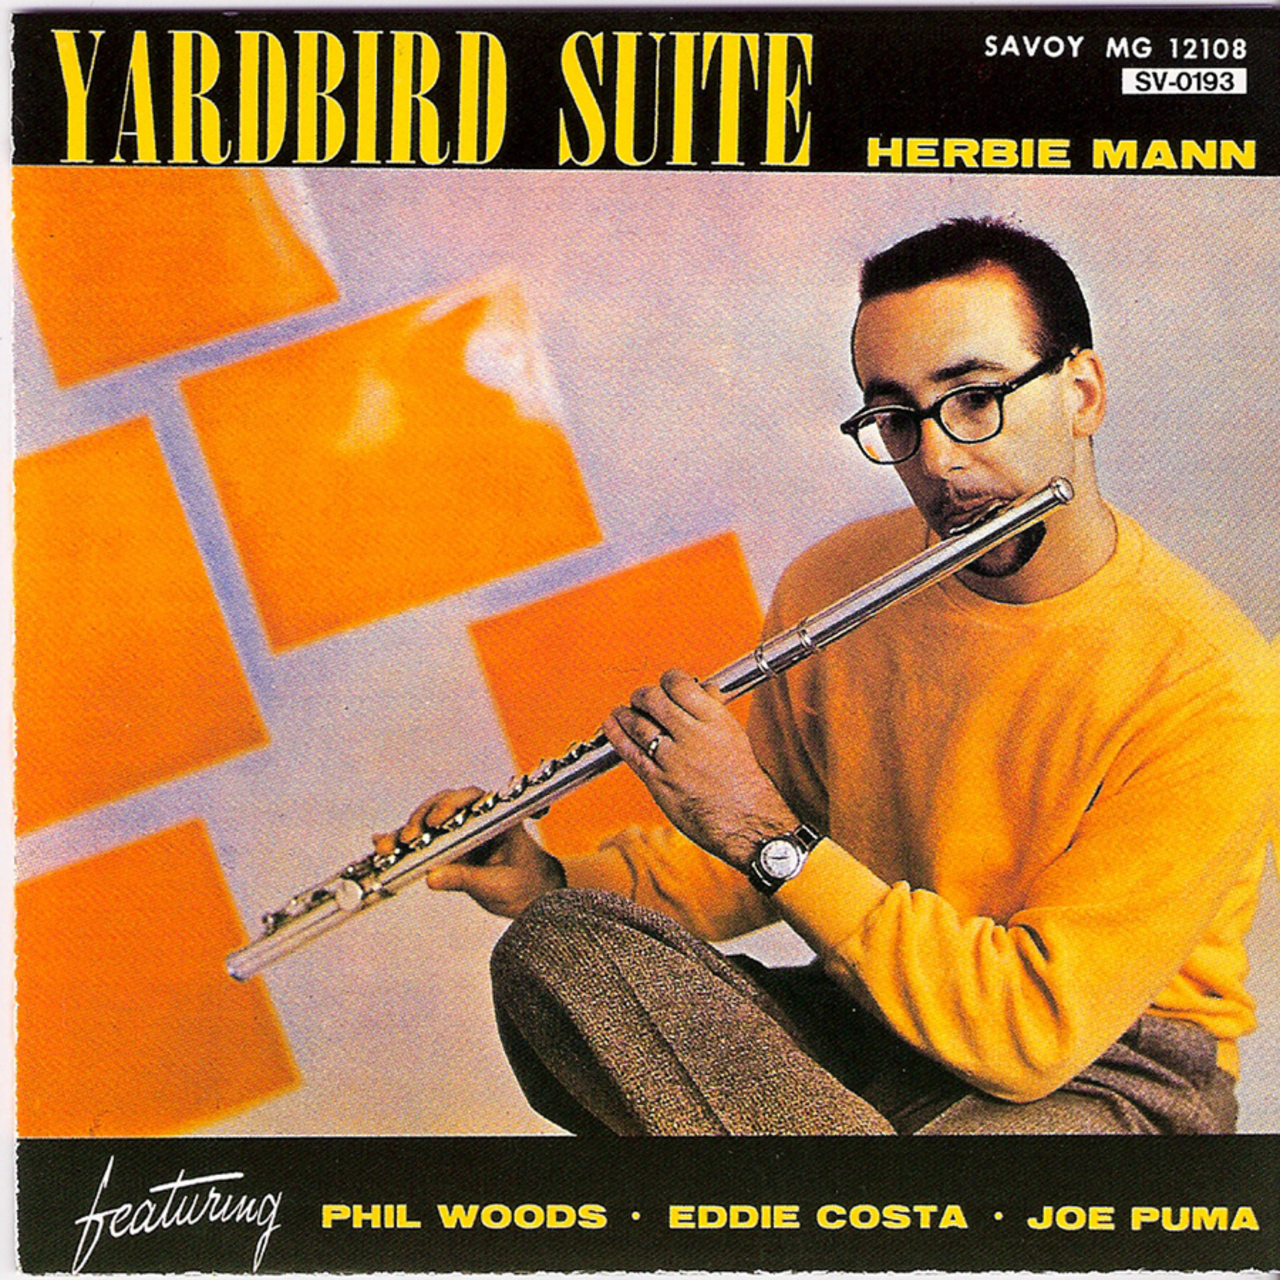 Herbie mann sextet one for tubby 1957 newjazzunited herbie mann sextet one for tubby 1957 publicscrutiny Choice Image